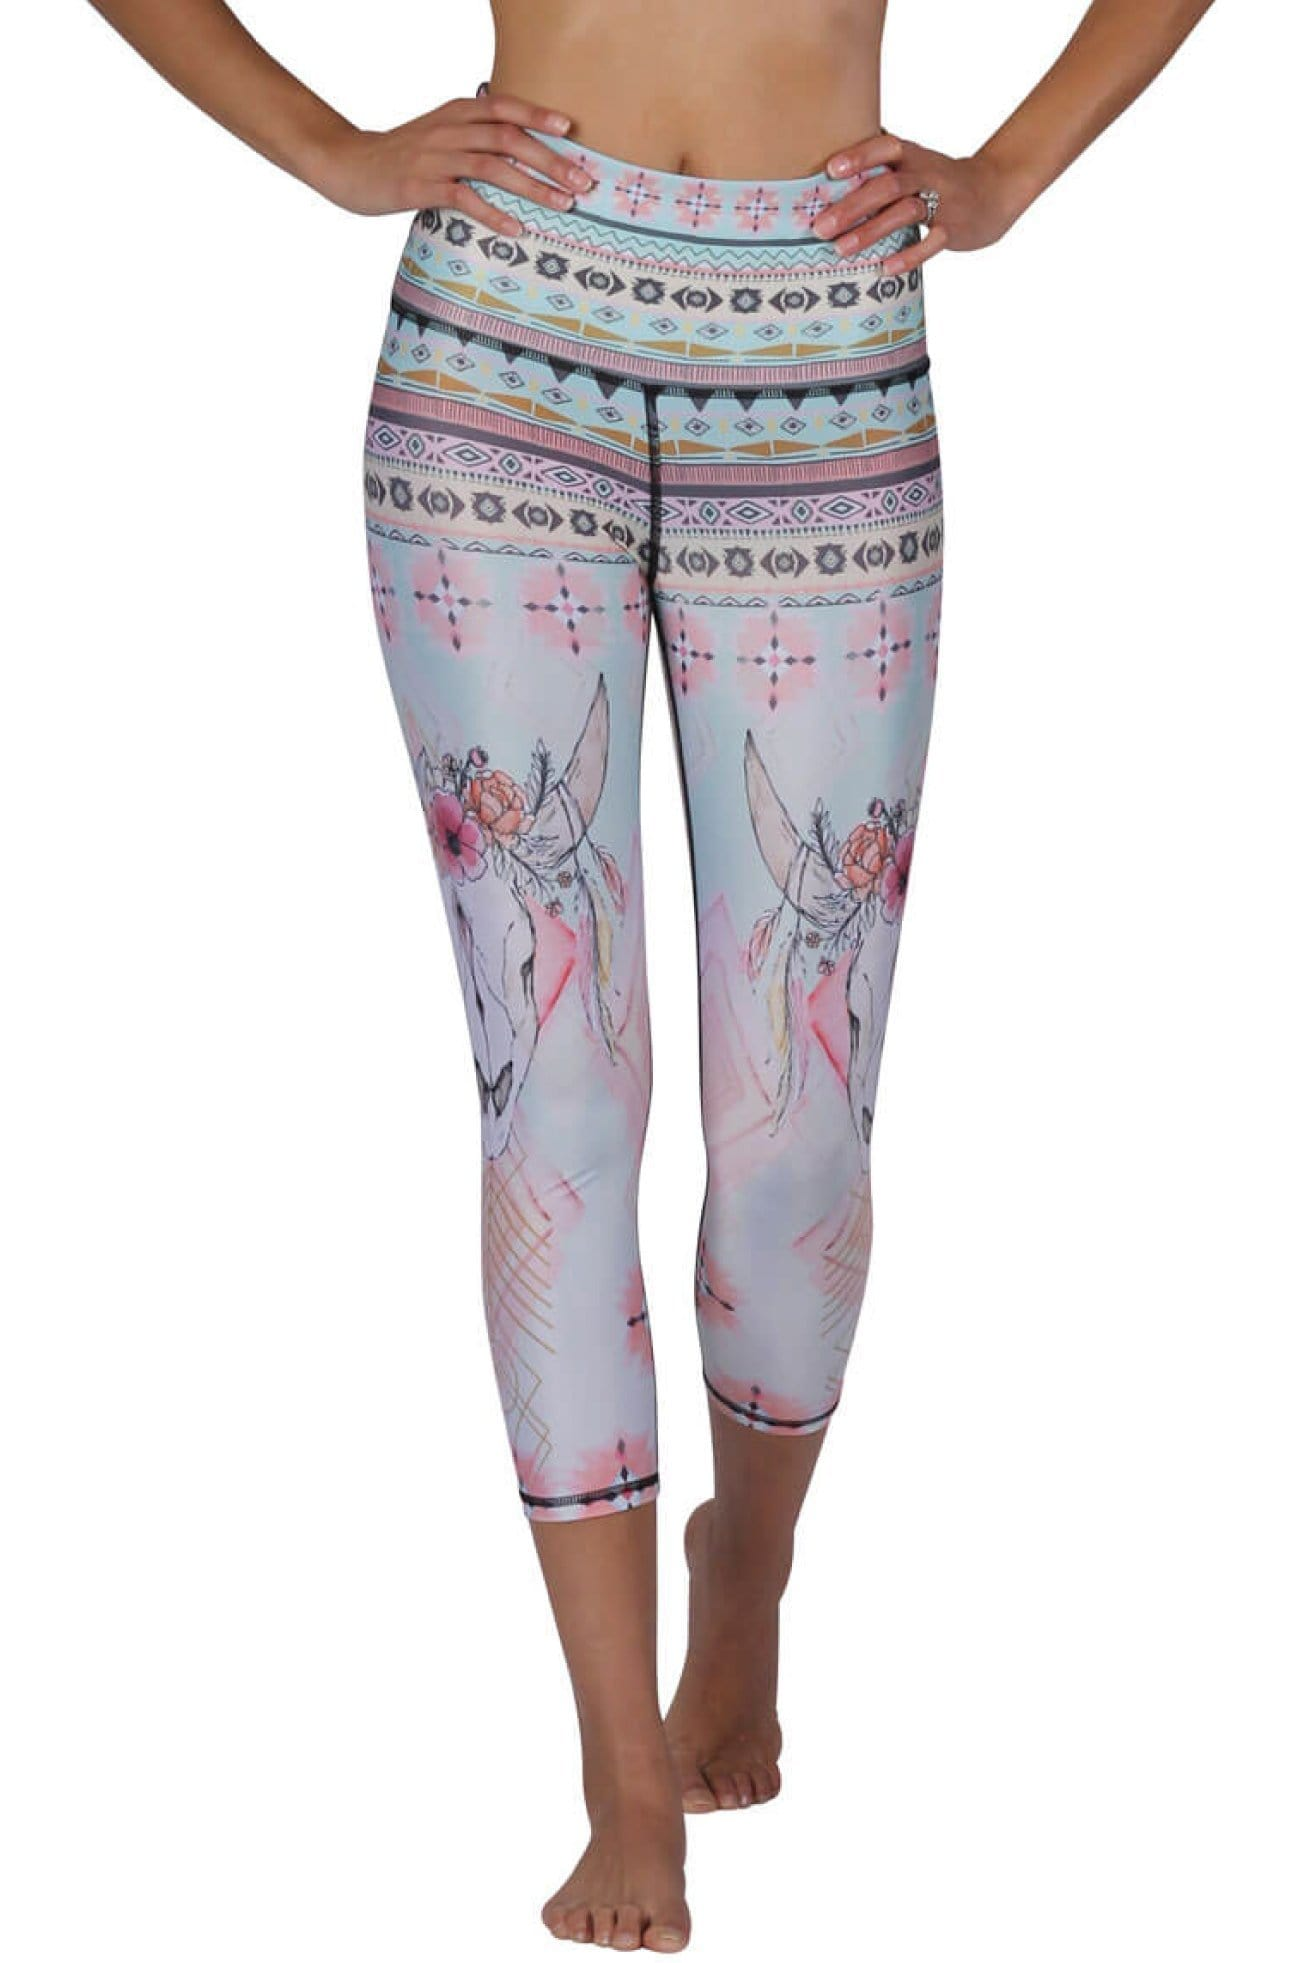 Yoga Democracy Women's Eco-friendly yoga crop Leggings in Dream Weaver Print made from post consumer recycled plastic